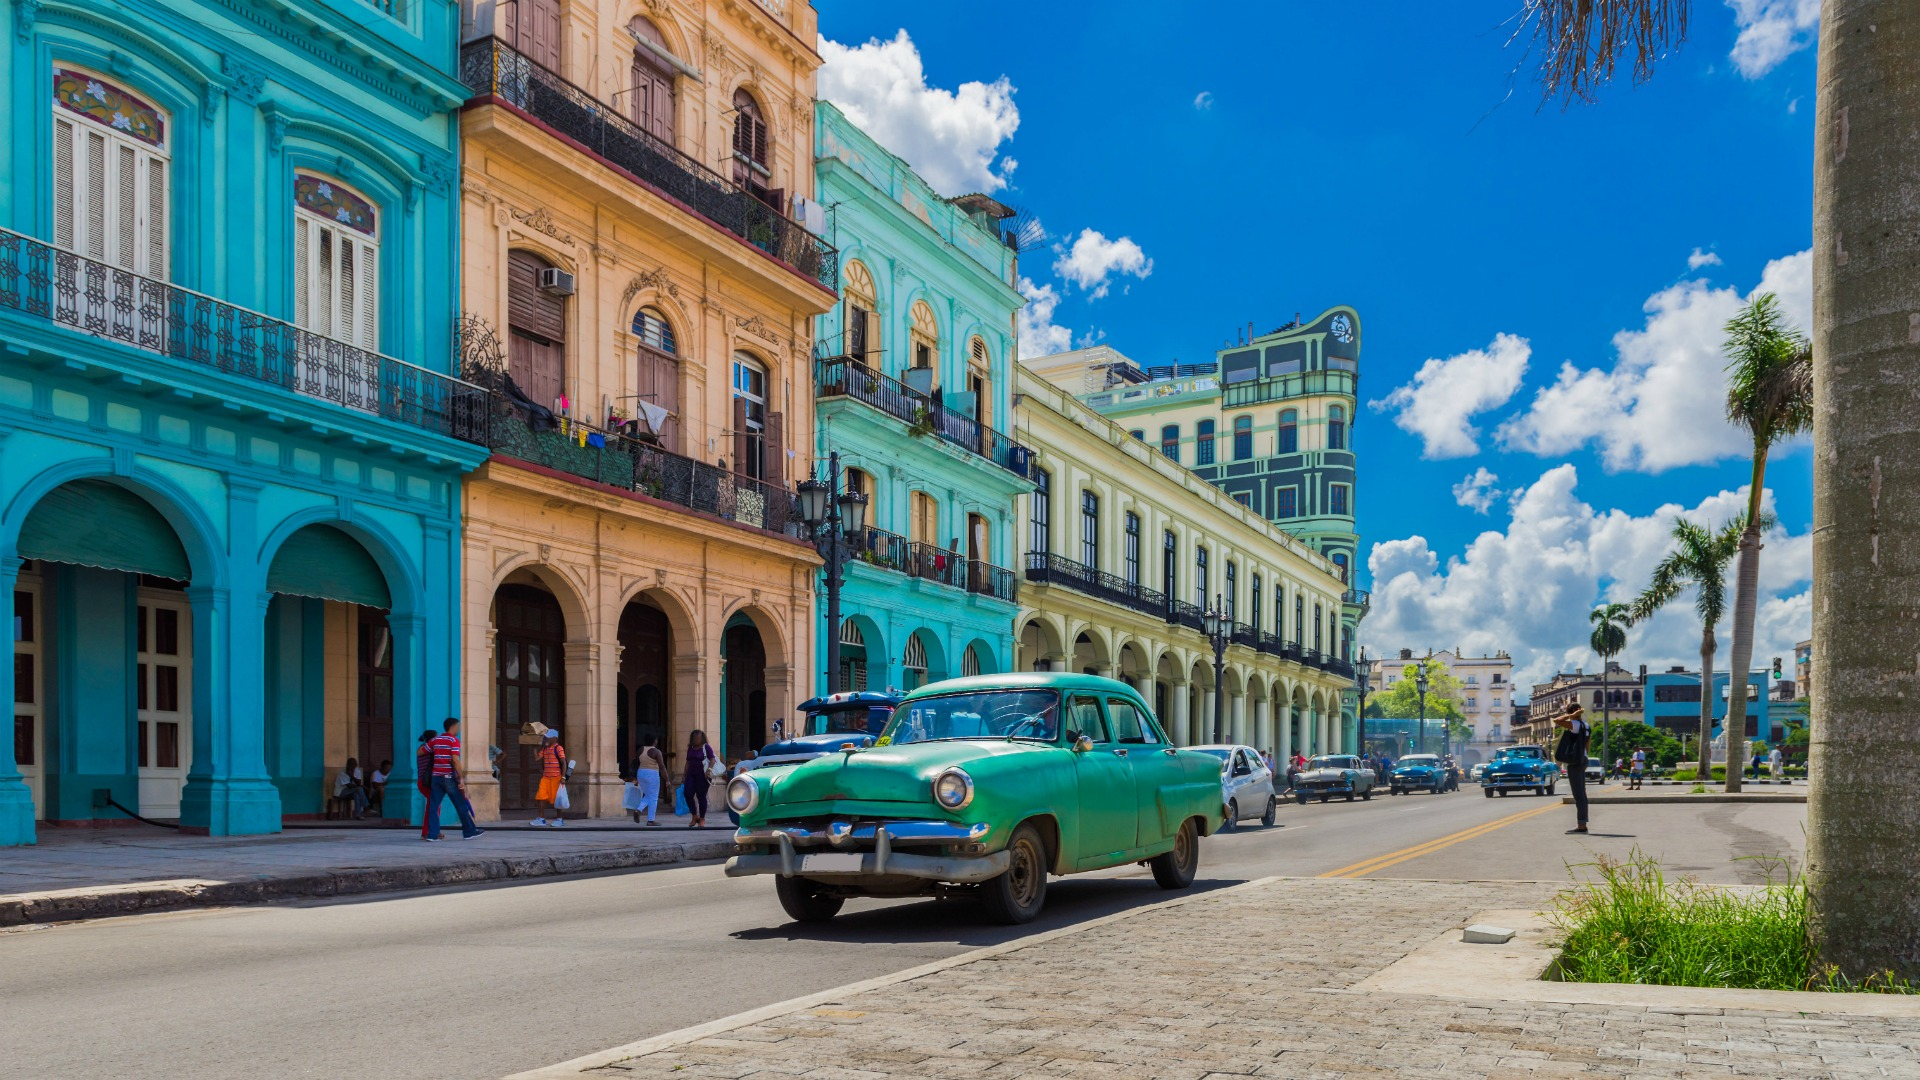 Travel Guide: Top 5 places to see in Havana, Cuba